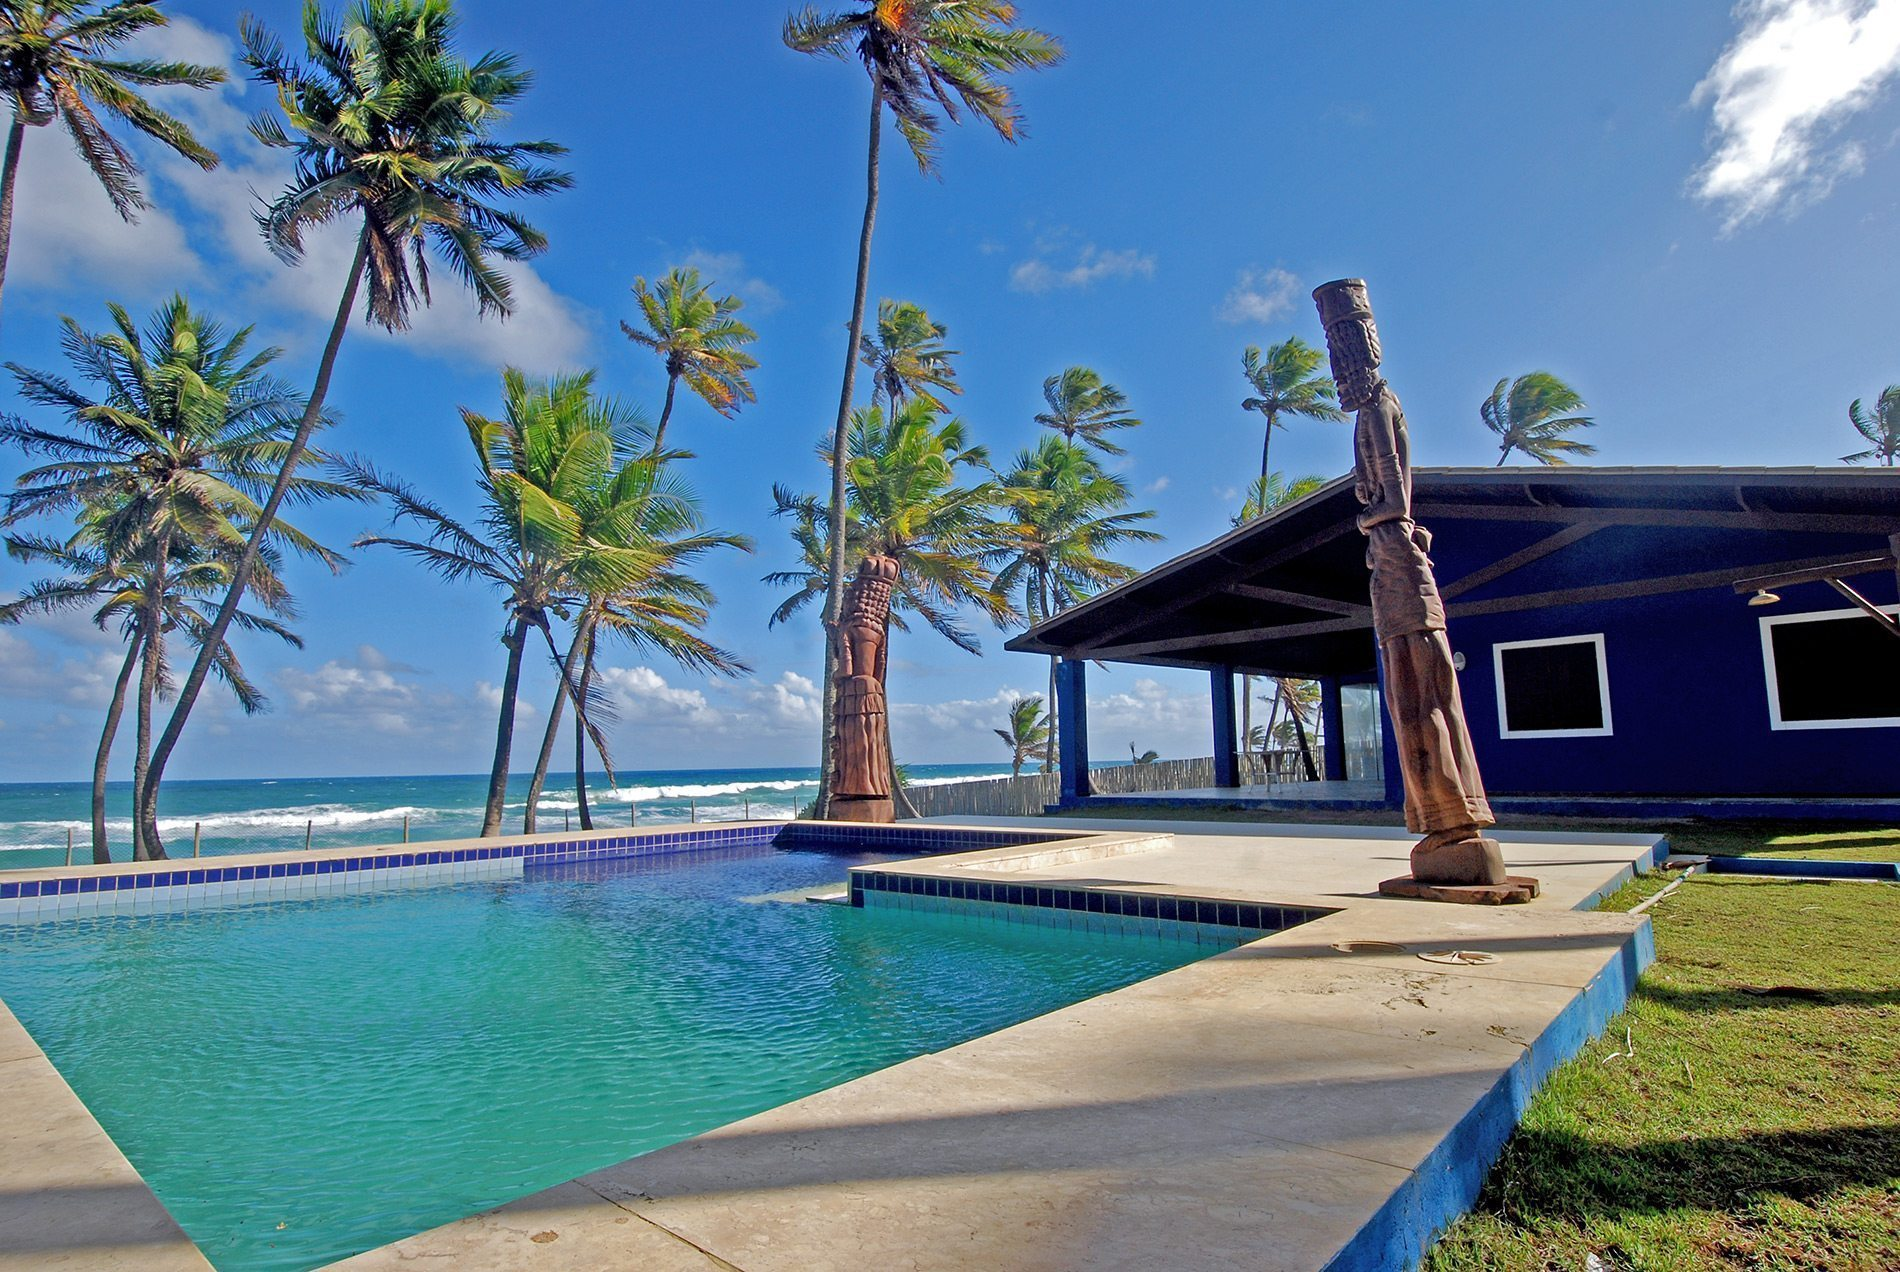 Oceanfront home for sale Busca Vida